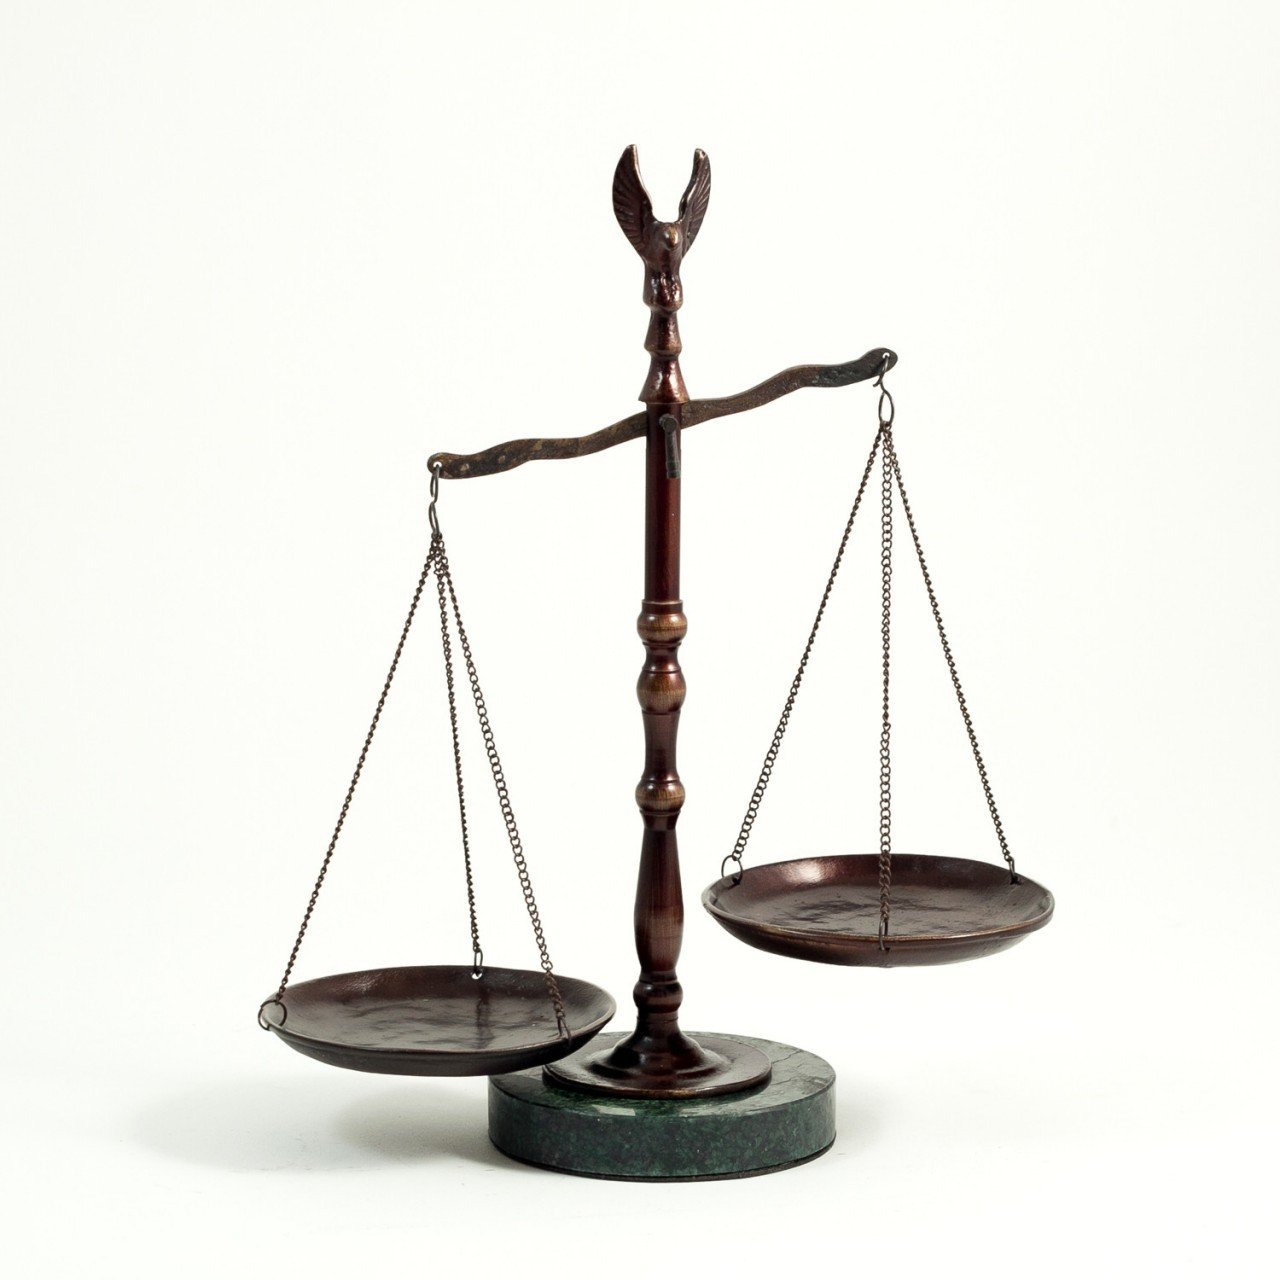 Amazon.com: Bronzed Legal Lawyer Scales Of Justice With Eagle Finial And  Marble Base 12.5in.ht G.: Office Products